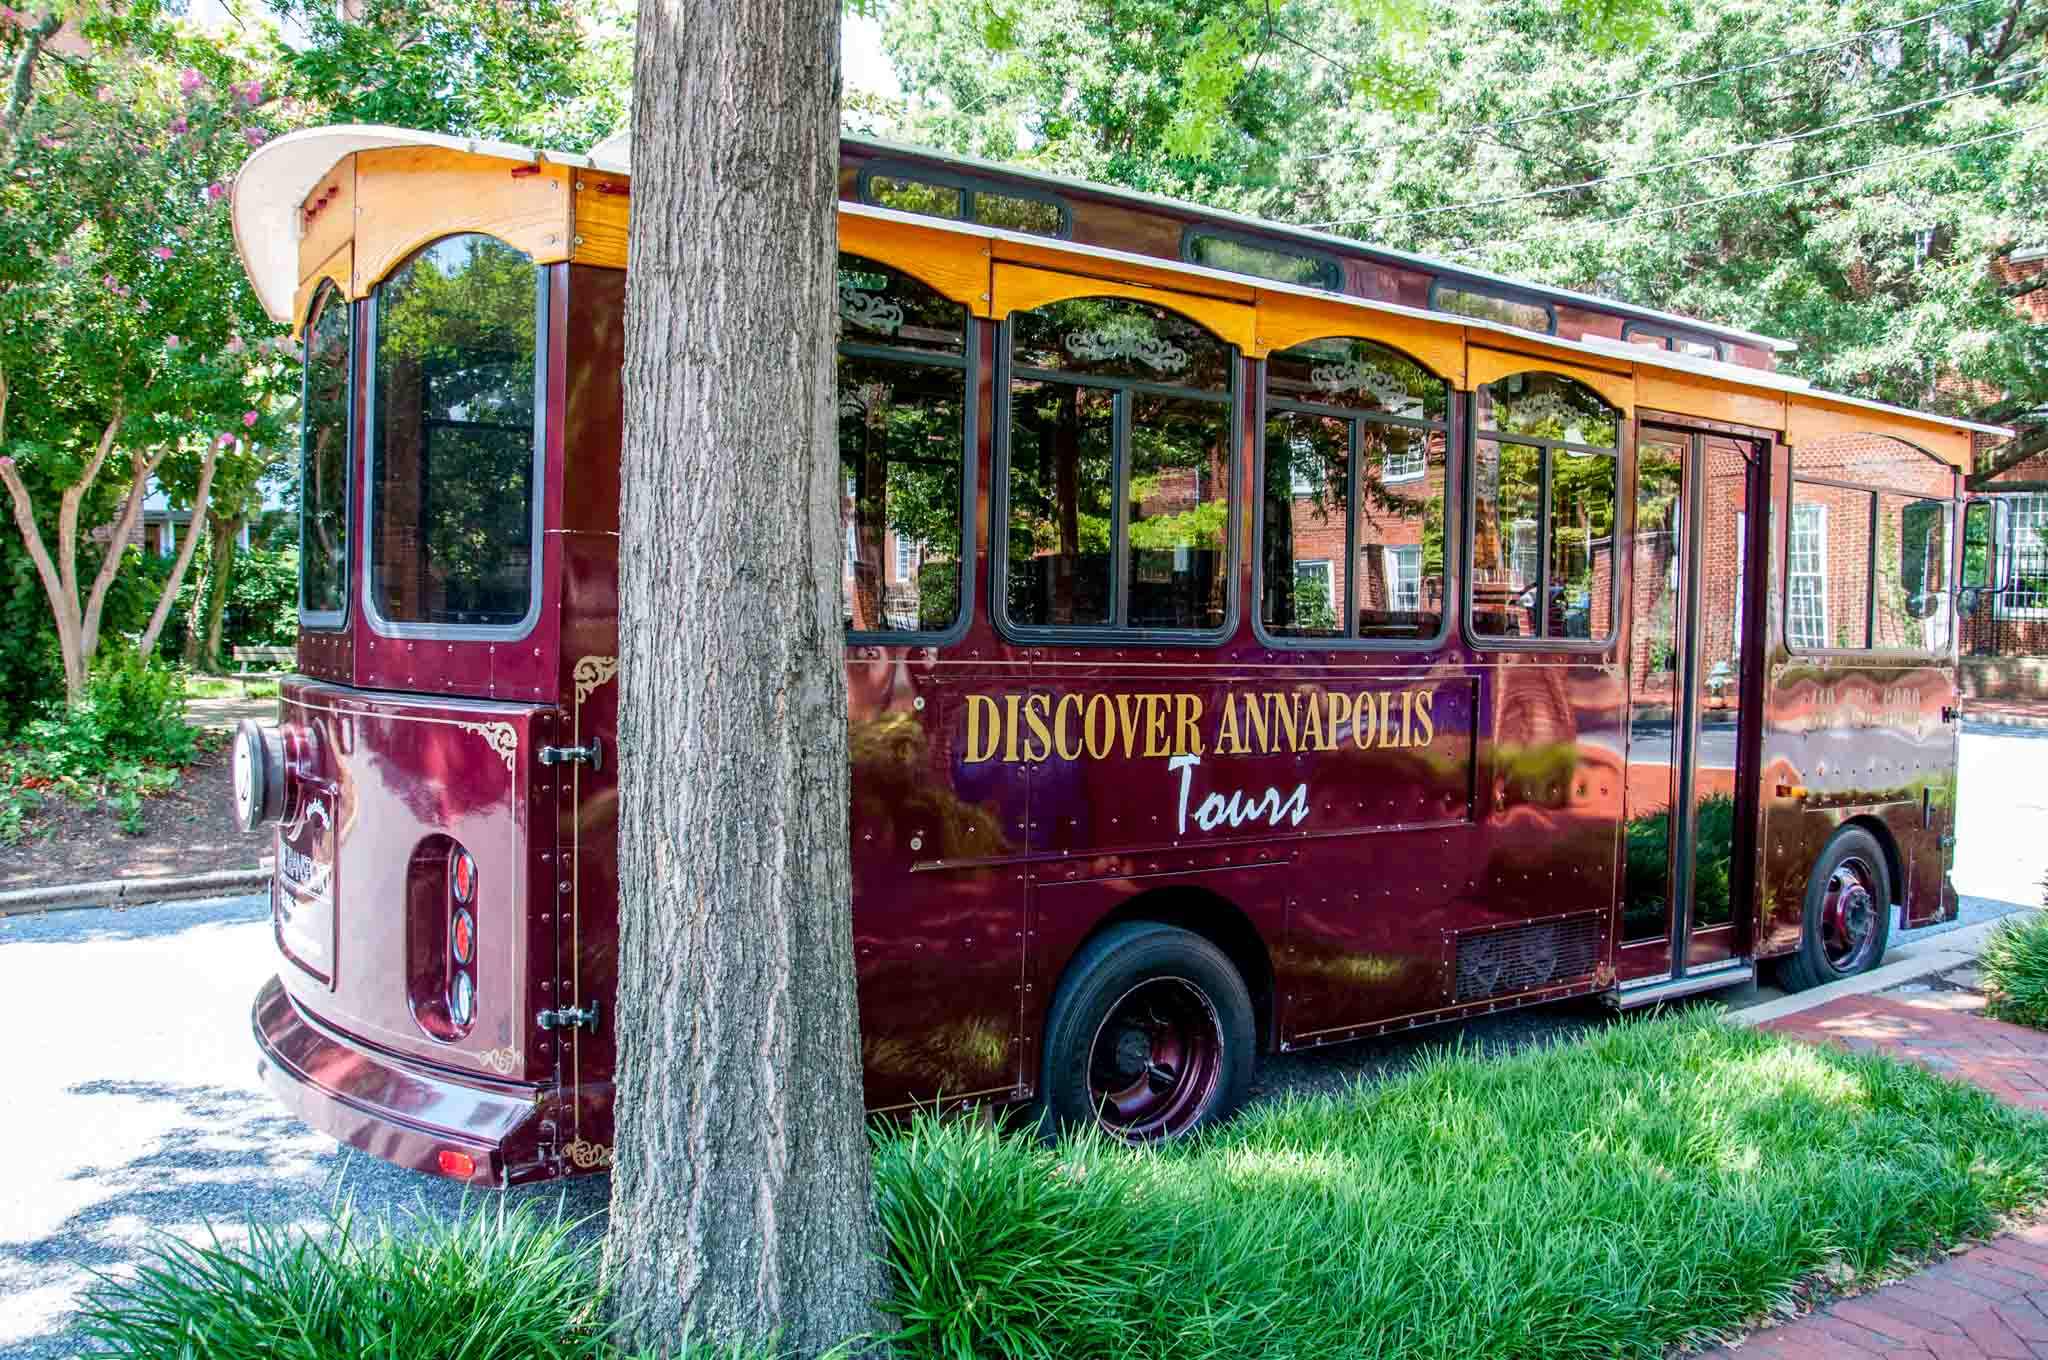 Discover Annapolis trolley car